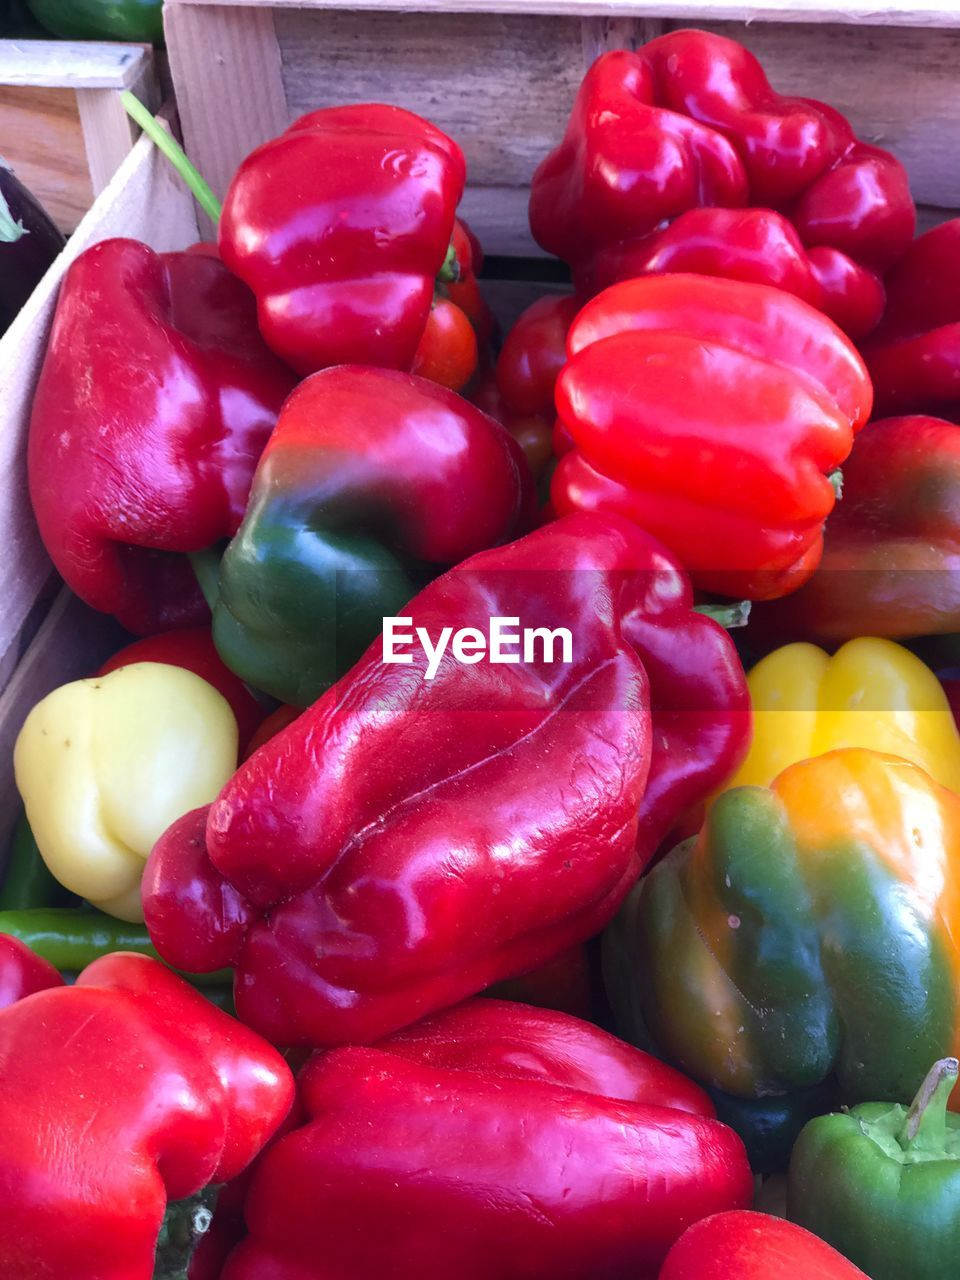 food and drink, pepper, food, vegetable, bell pepper, freshness, red, healthy eating, red bell pepper, wellbeing, still life, close-up, large group of objects, no people, indoors, abundance, for sale, raw food, choice, yellow bell pepper, paprika